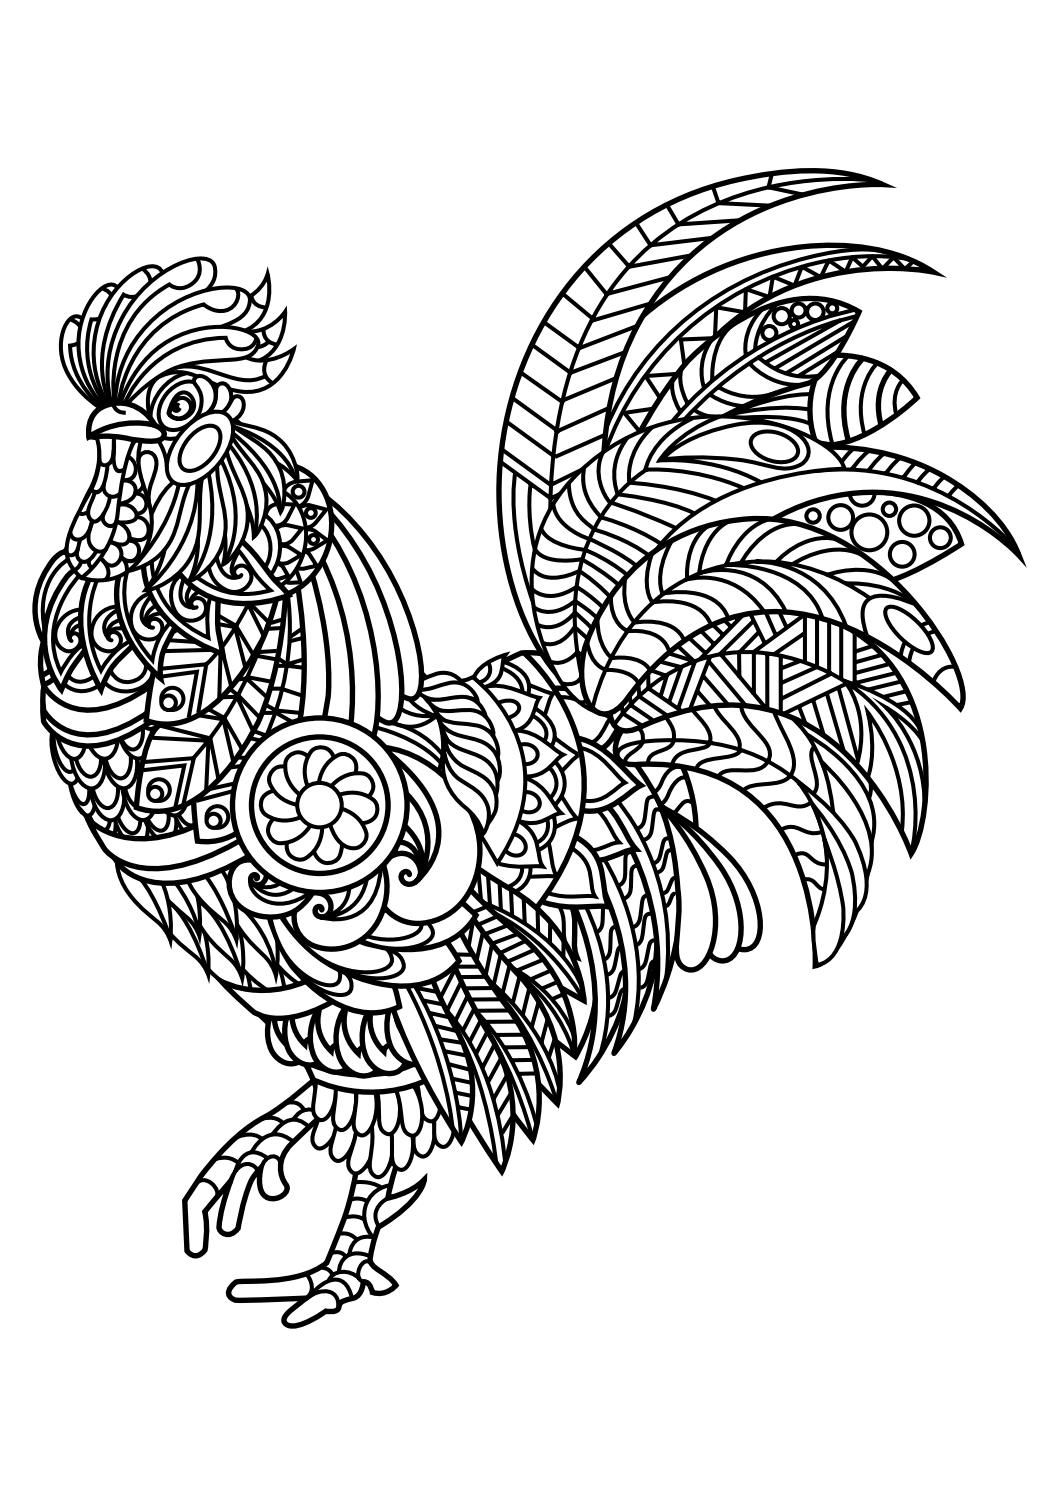 Animals free printable coloring pages ~ Animal coloring pages pdf | Coloring - Birds and Feathers ...